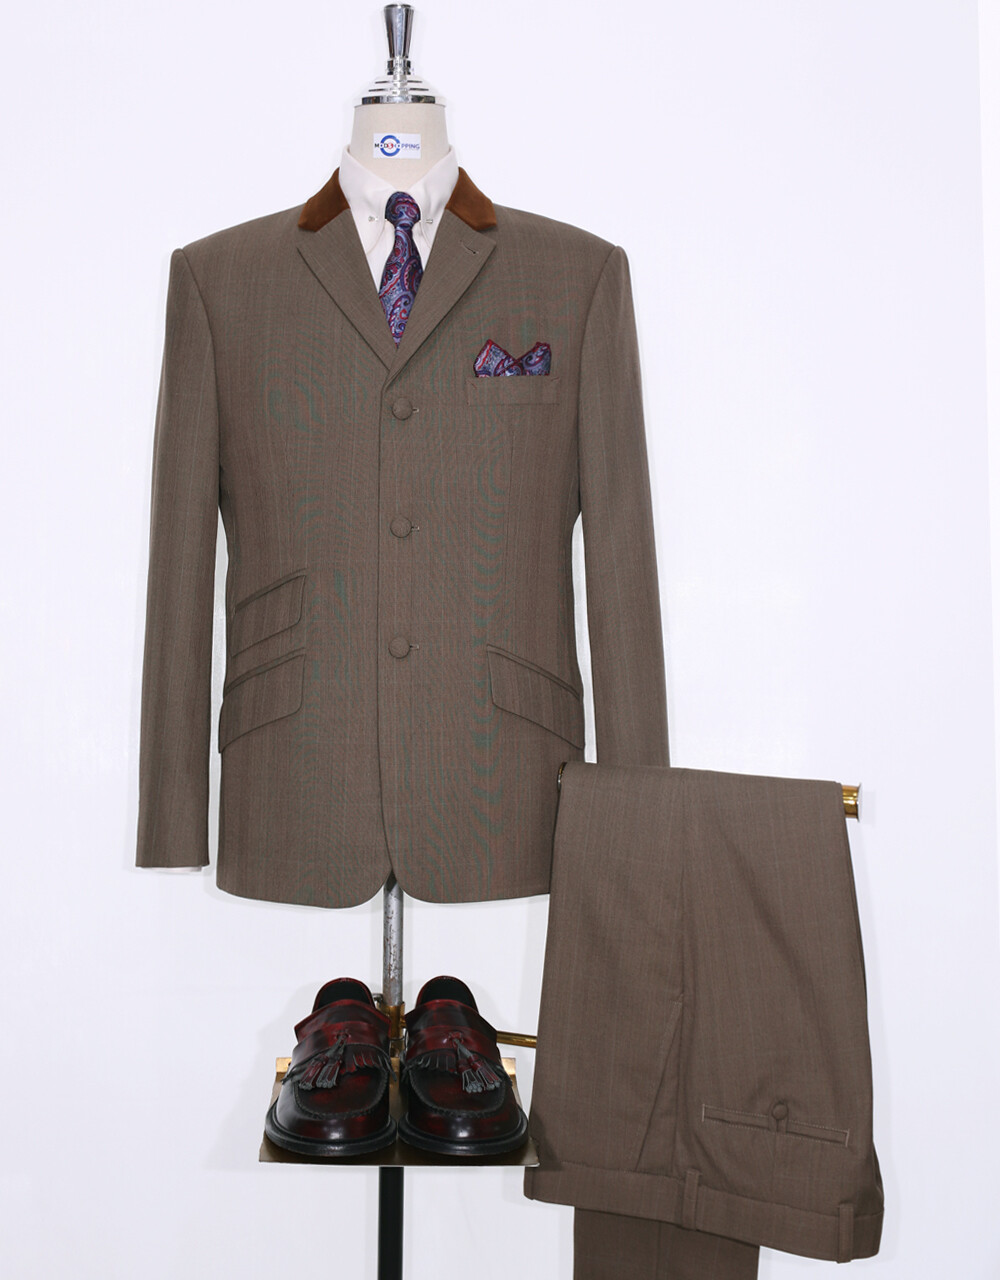 This Suit Only Brown Glen Plaid Check Suit Jacket 40R  Trouser 34/32